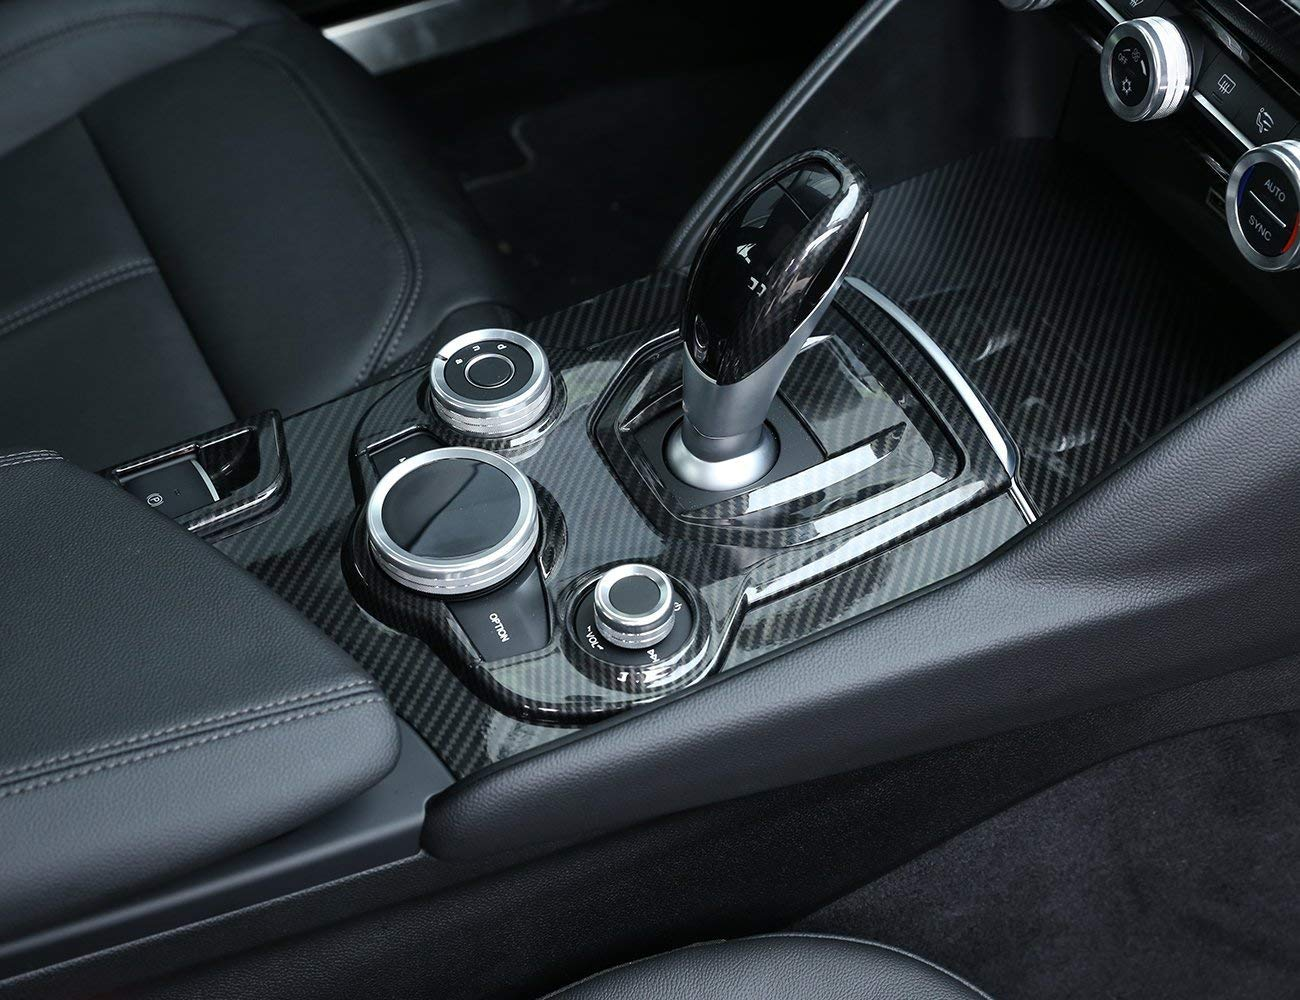 2018-2019 Center Console Organizer for Toyota Camry XLE XSE Vehicle OCD - Made in USA NOT for L, LE, SE